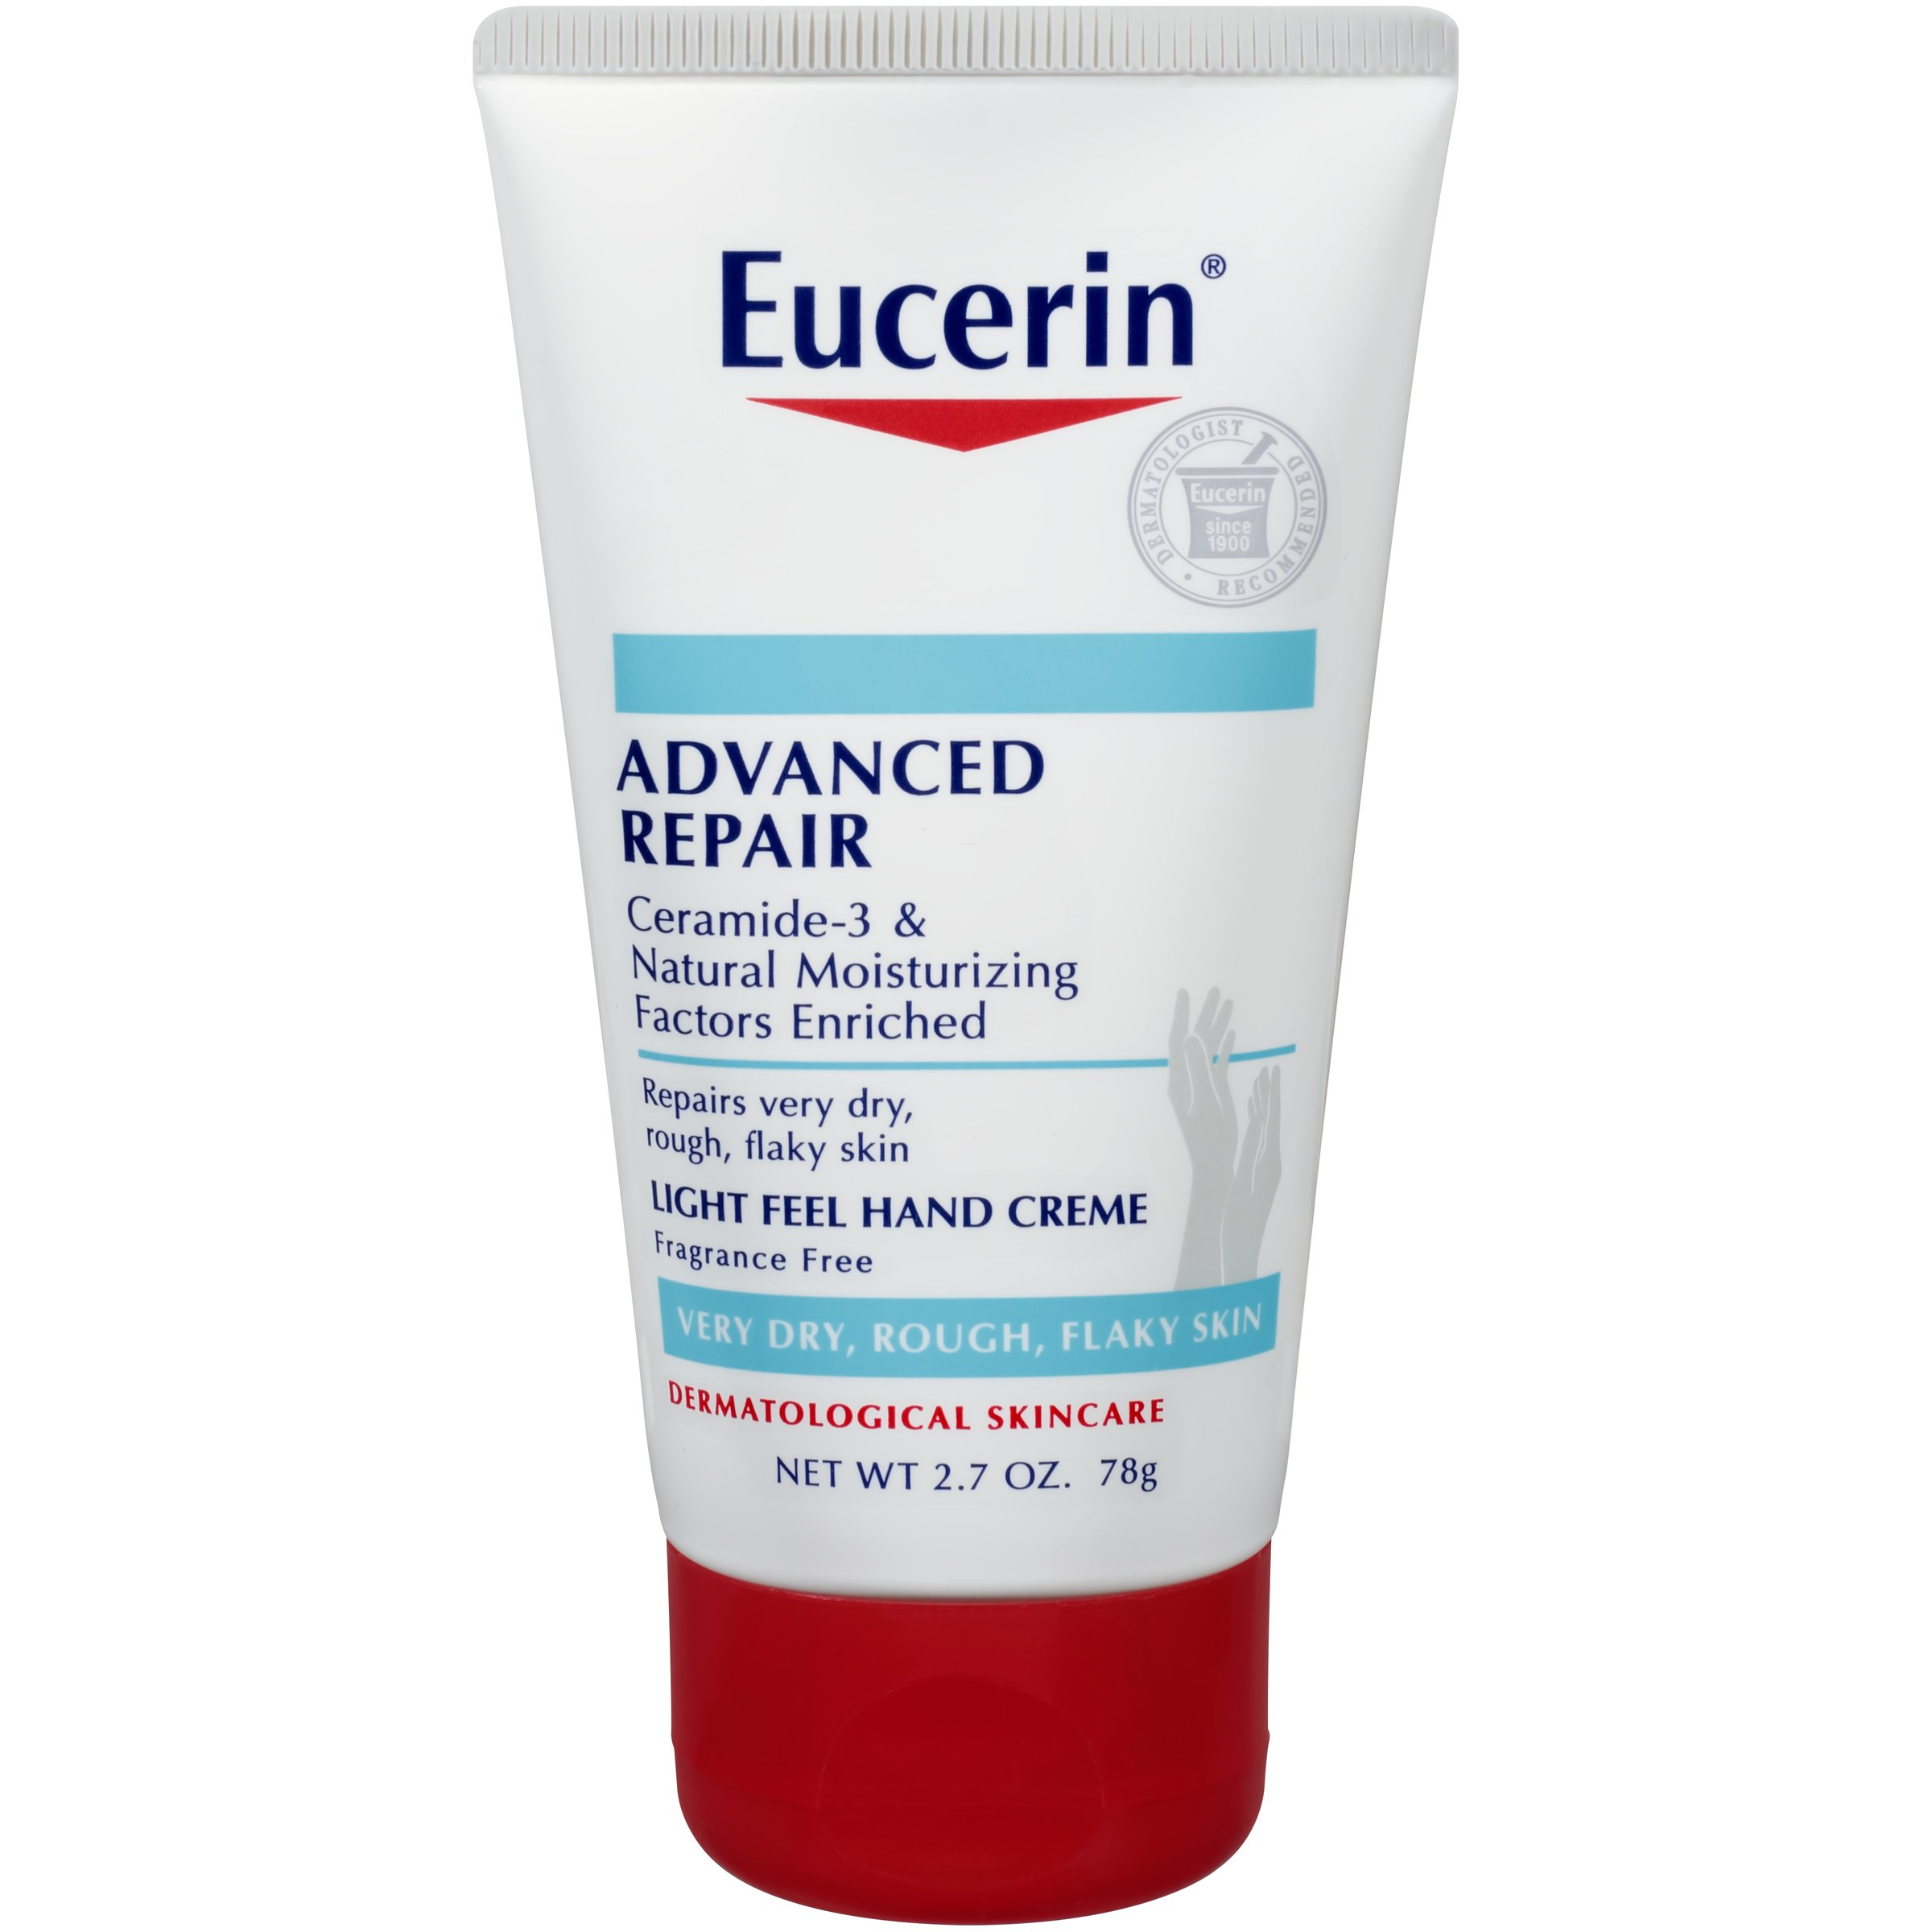 Eucerin Advanced Repair Hand Creme, 2.7 Ounce (Pack of 3)